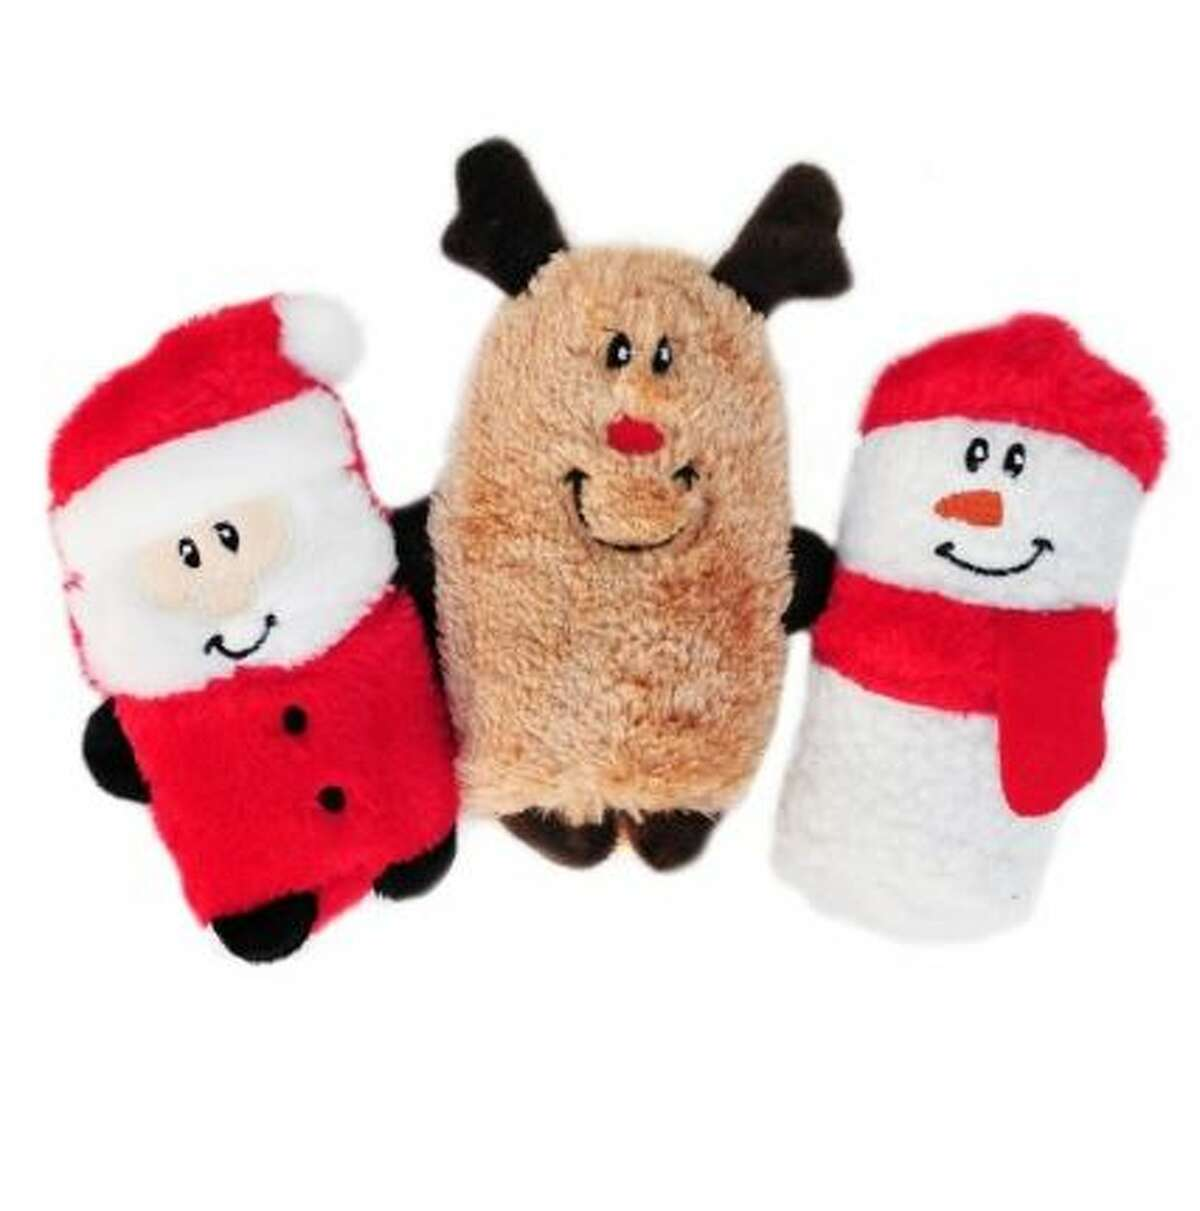 Holiday Squeakie Buddies Set of 3 from All The Best Pet Care: $17.99